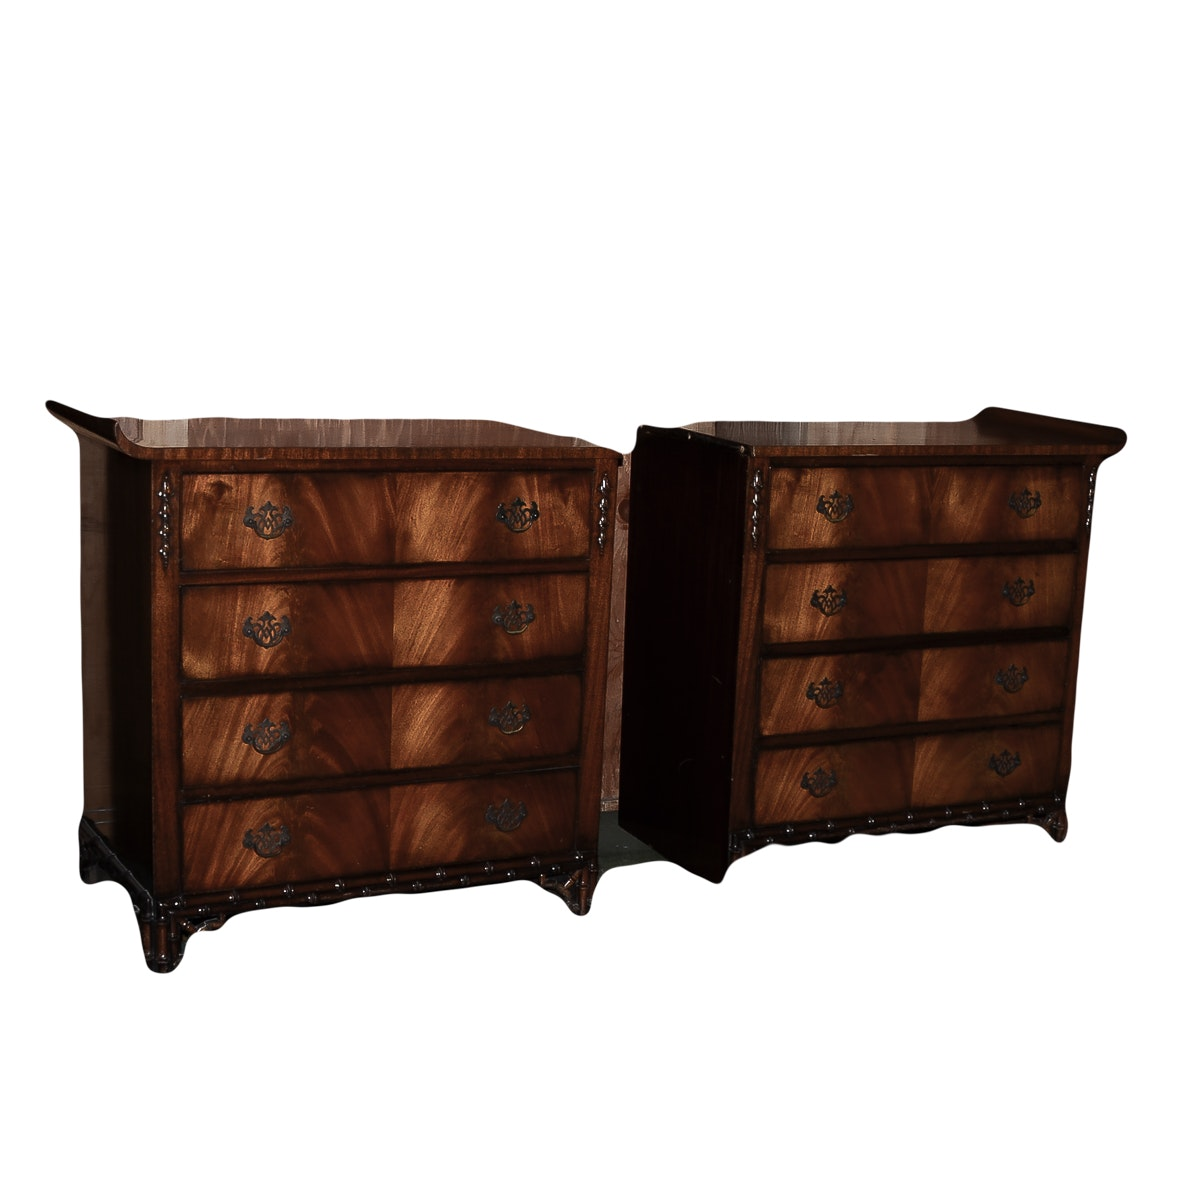 Antique Chinese Chippendale Style Two-Part Dresser